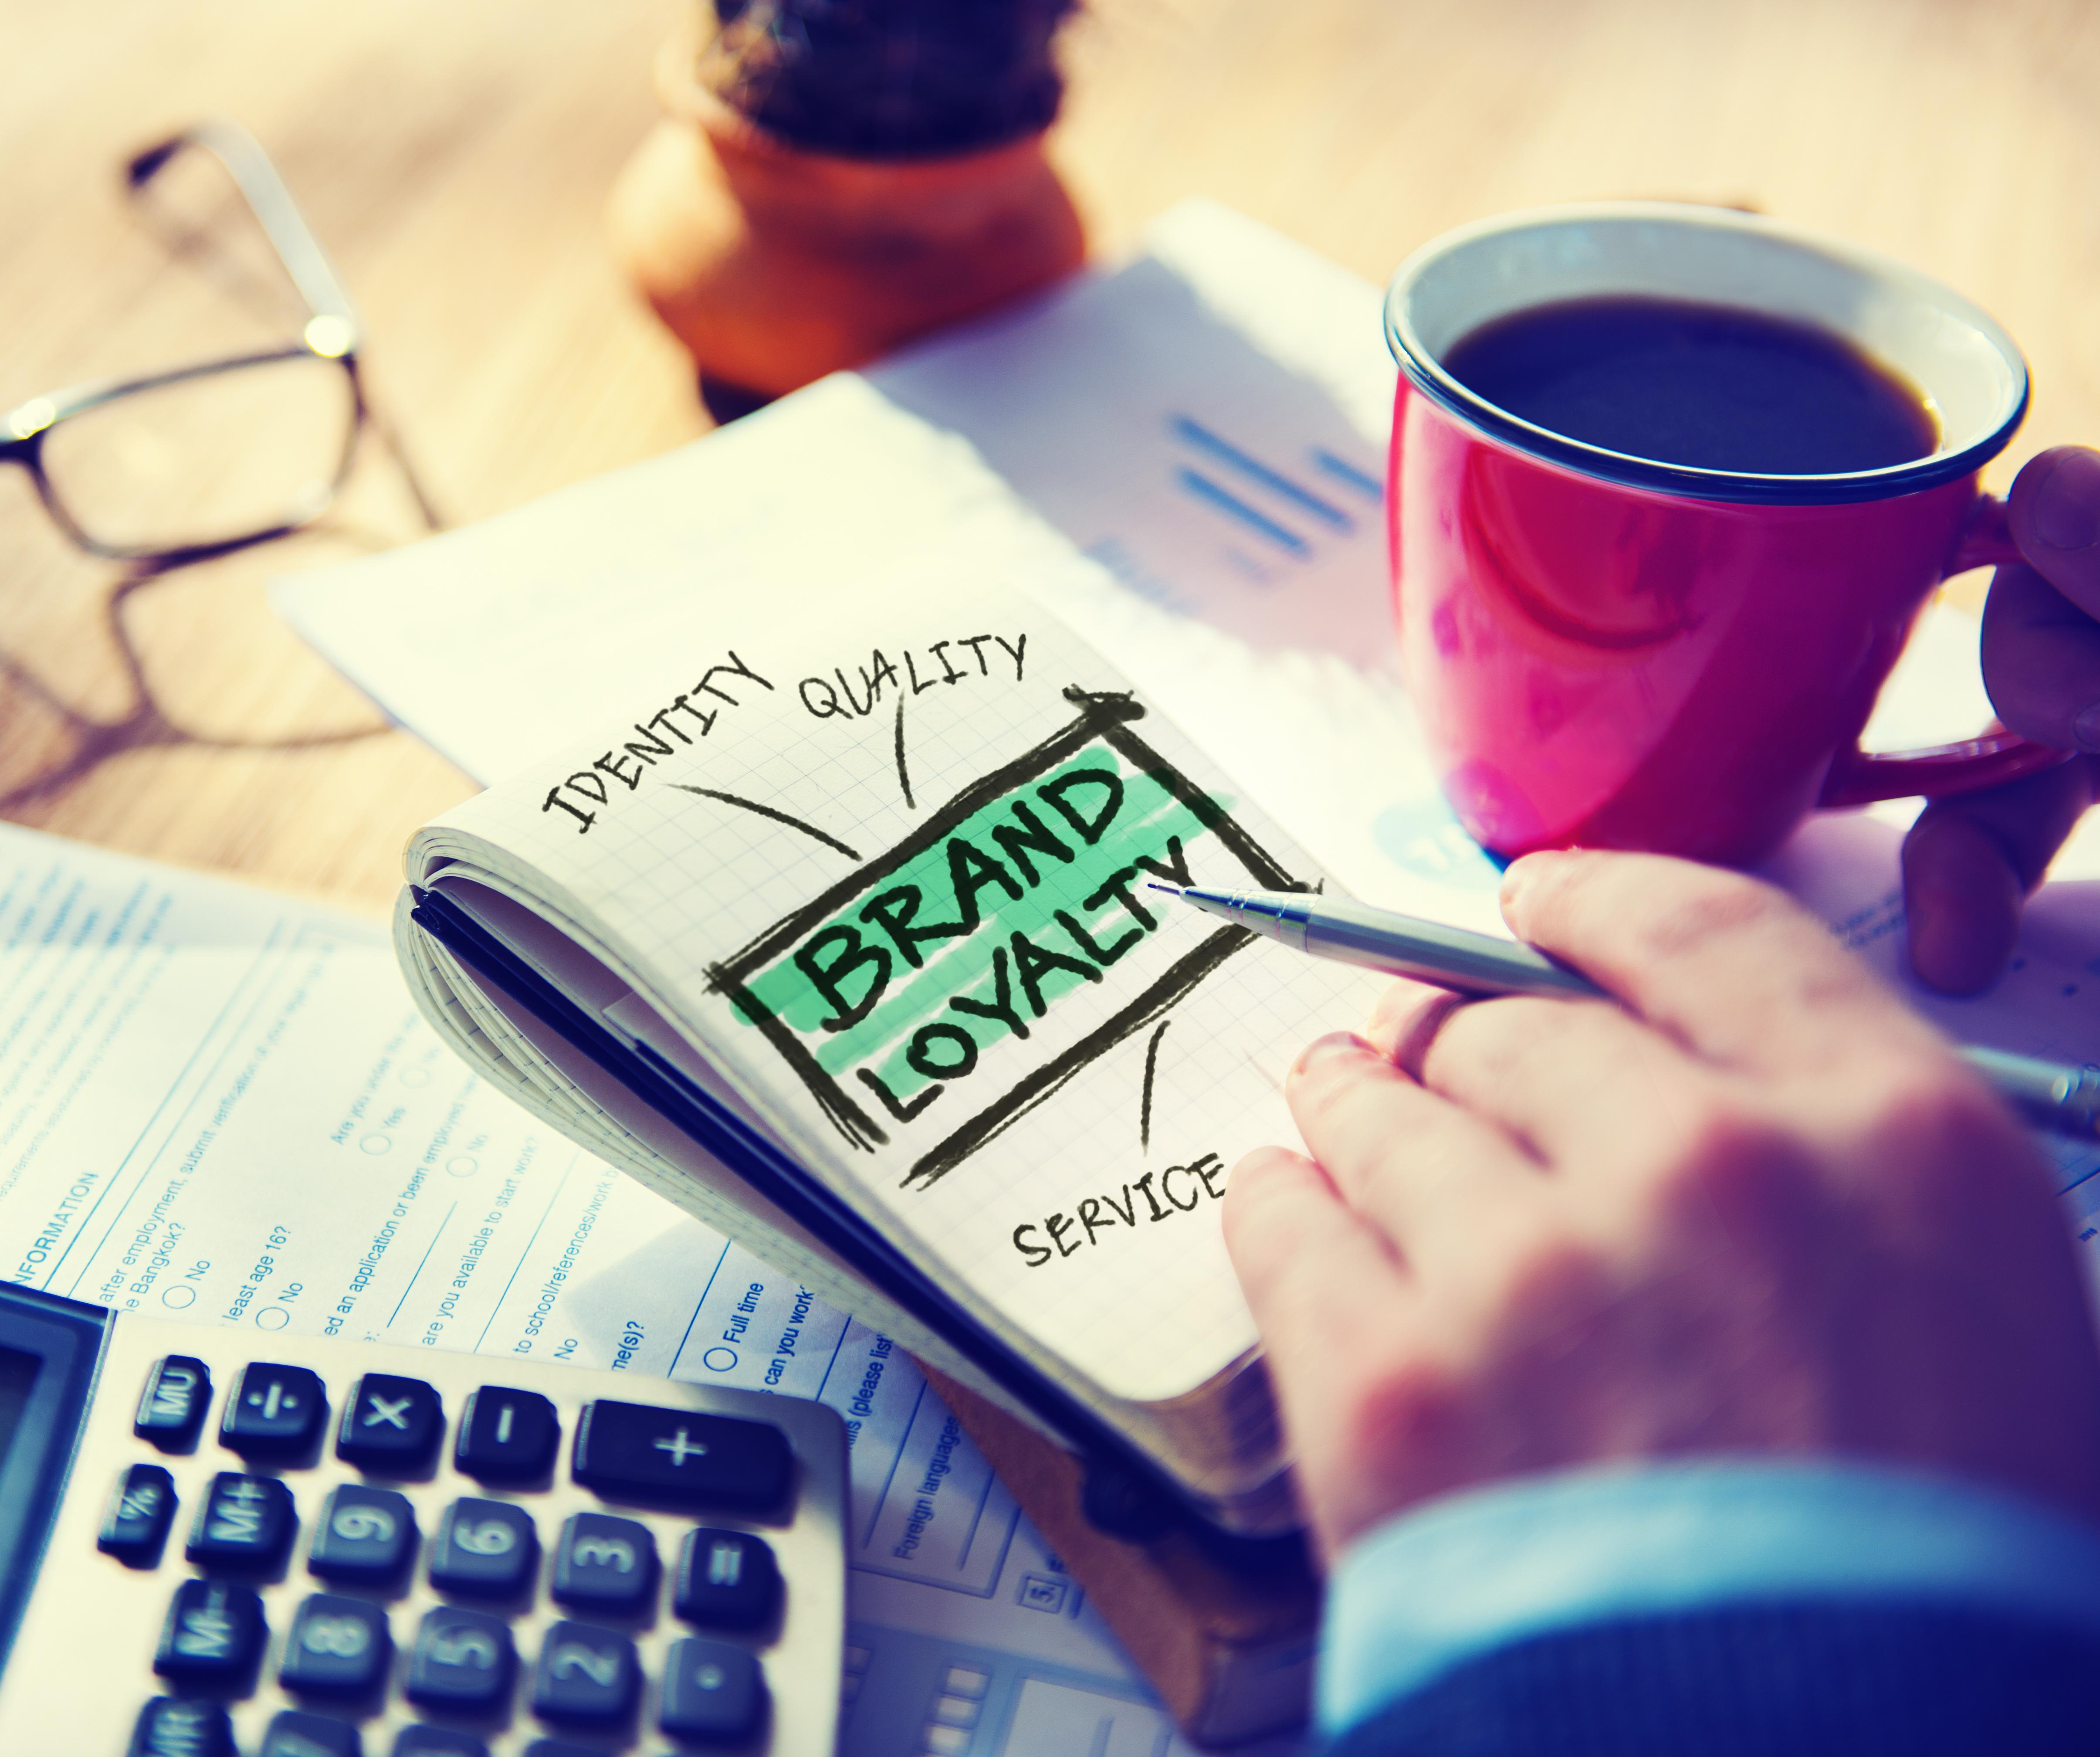 Brand Loyalty Marketing Branding Working Accounting Concept